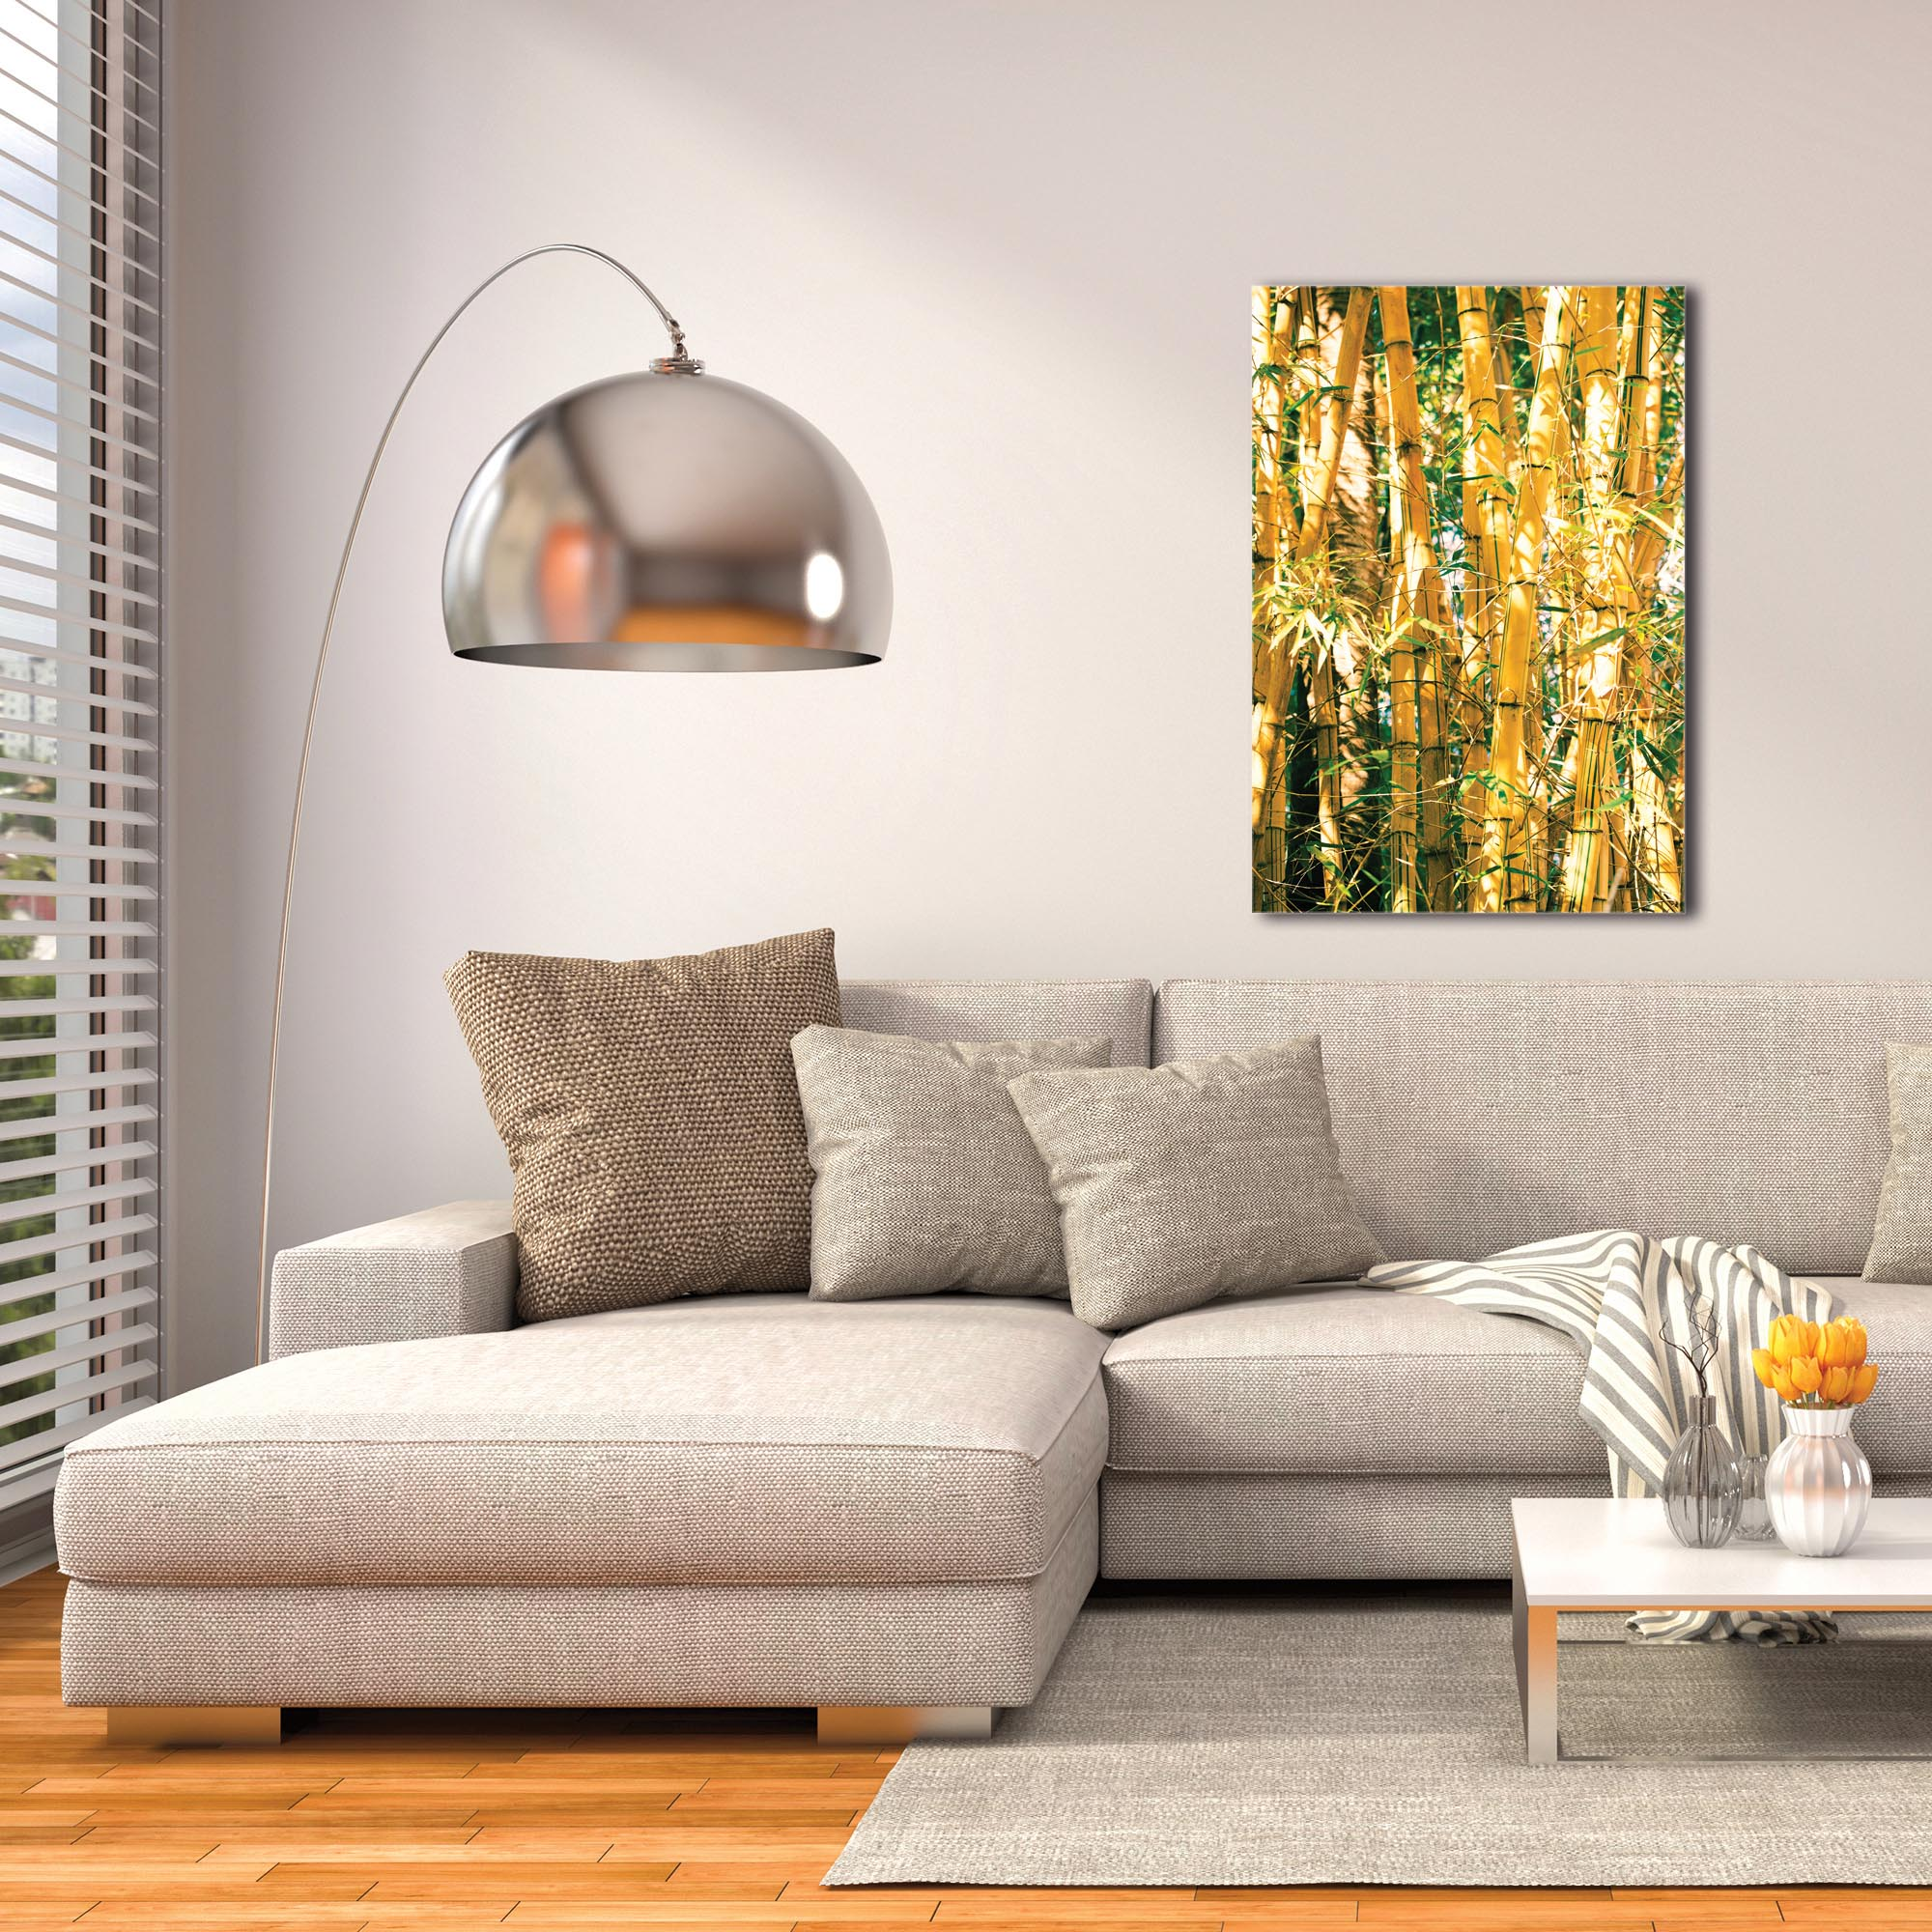 Asian Wall Art 'Bamboo Gold' - Bamboo Decor on Metal or Plexiglass - Image 3